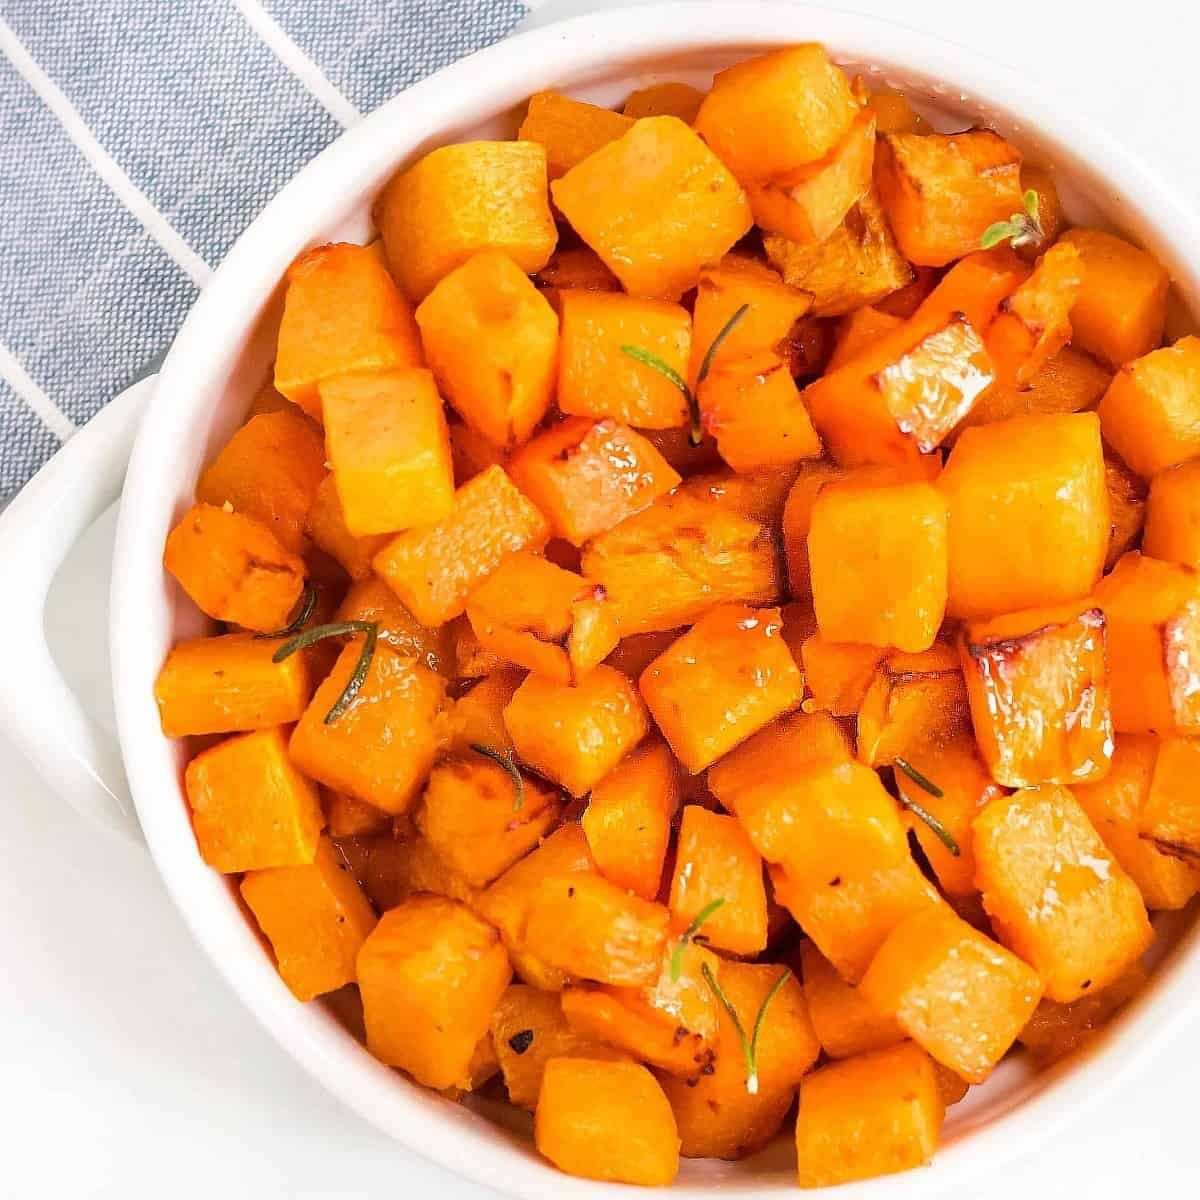 Bowl of roasted butternut squash cubes